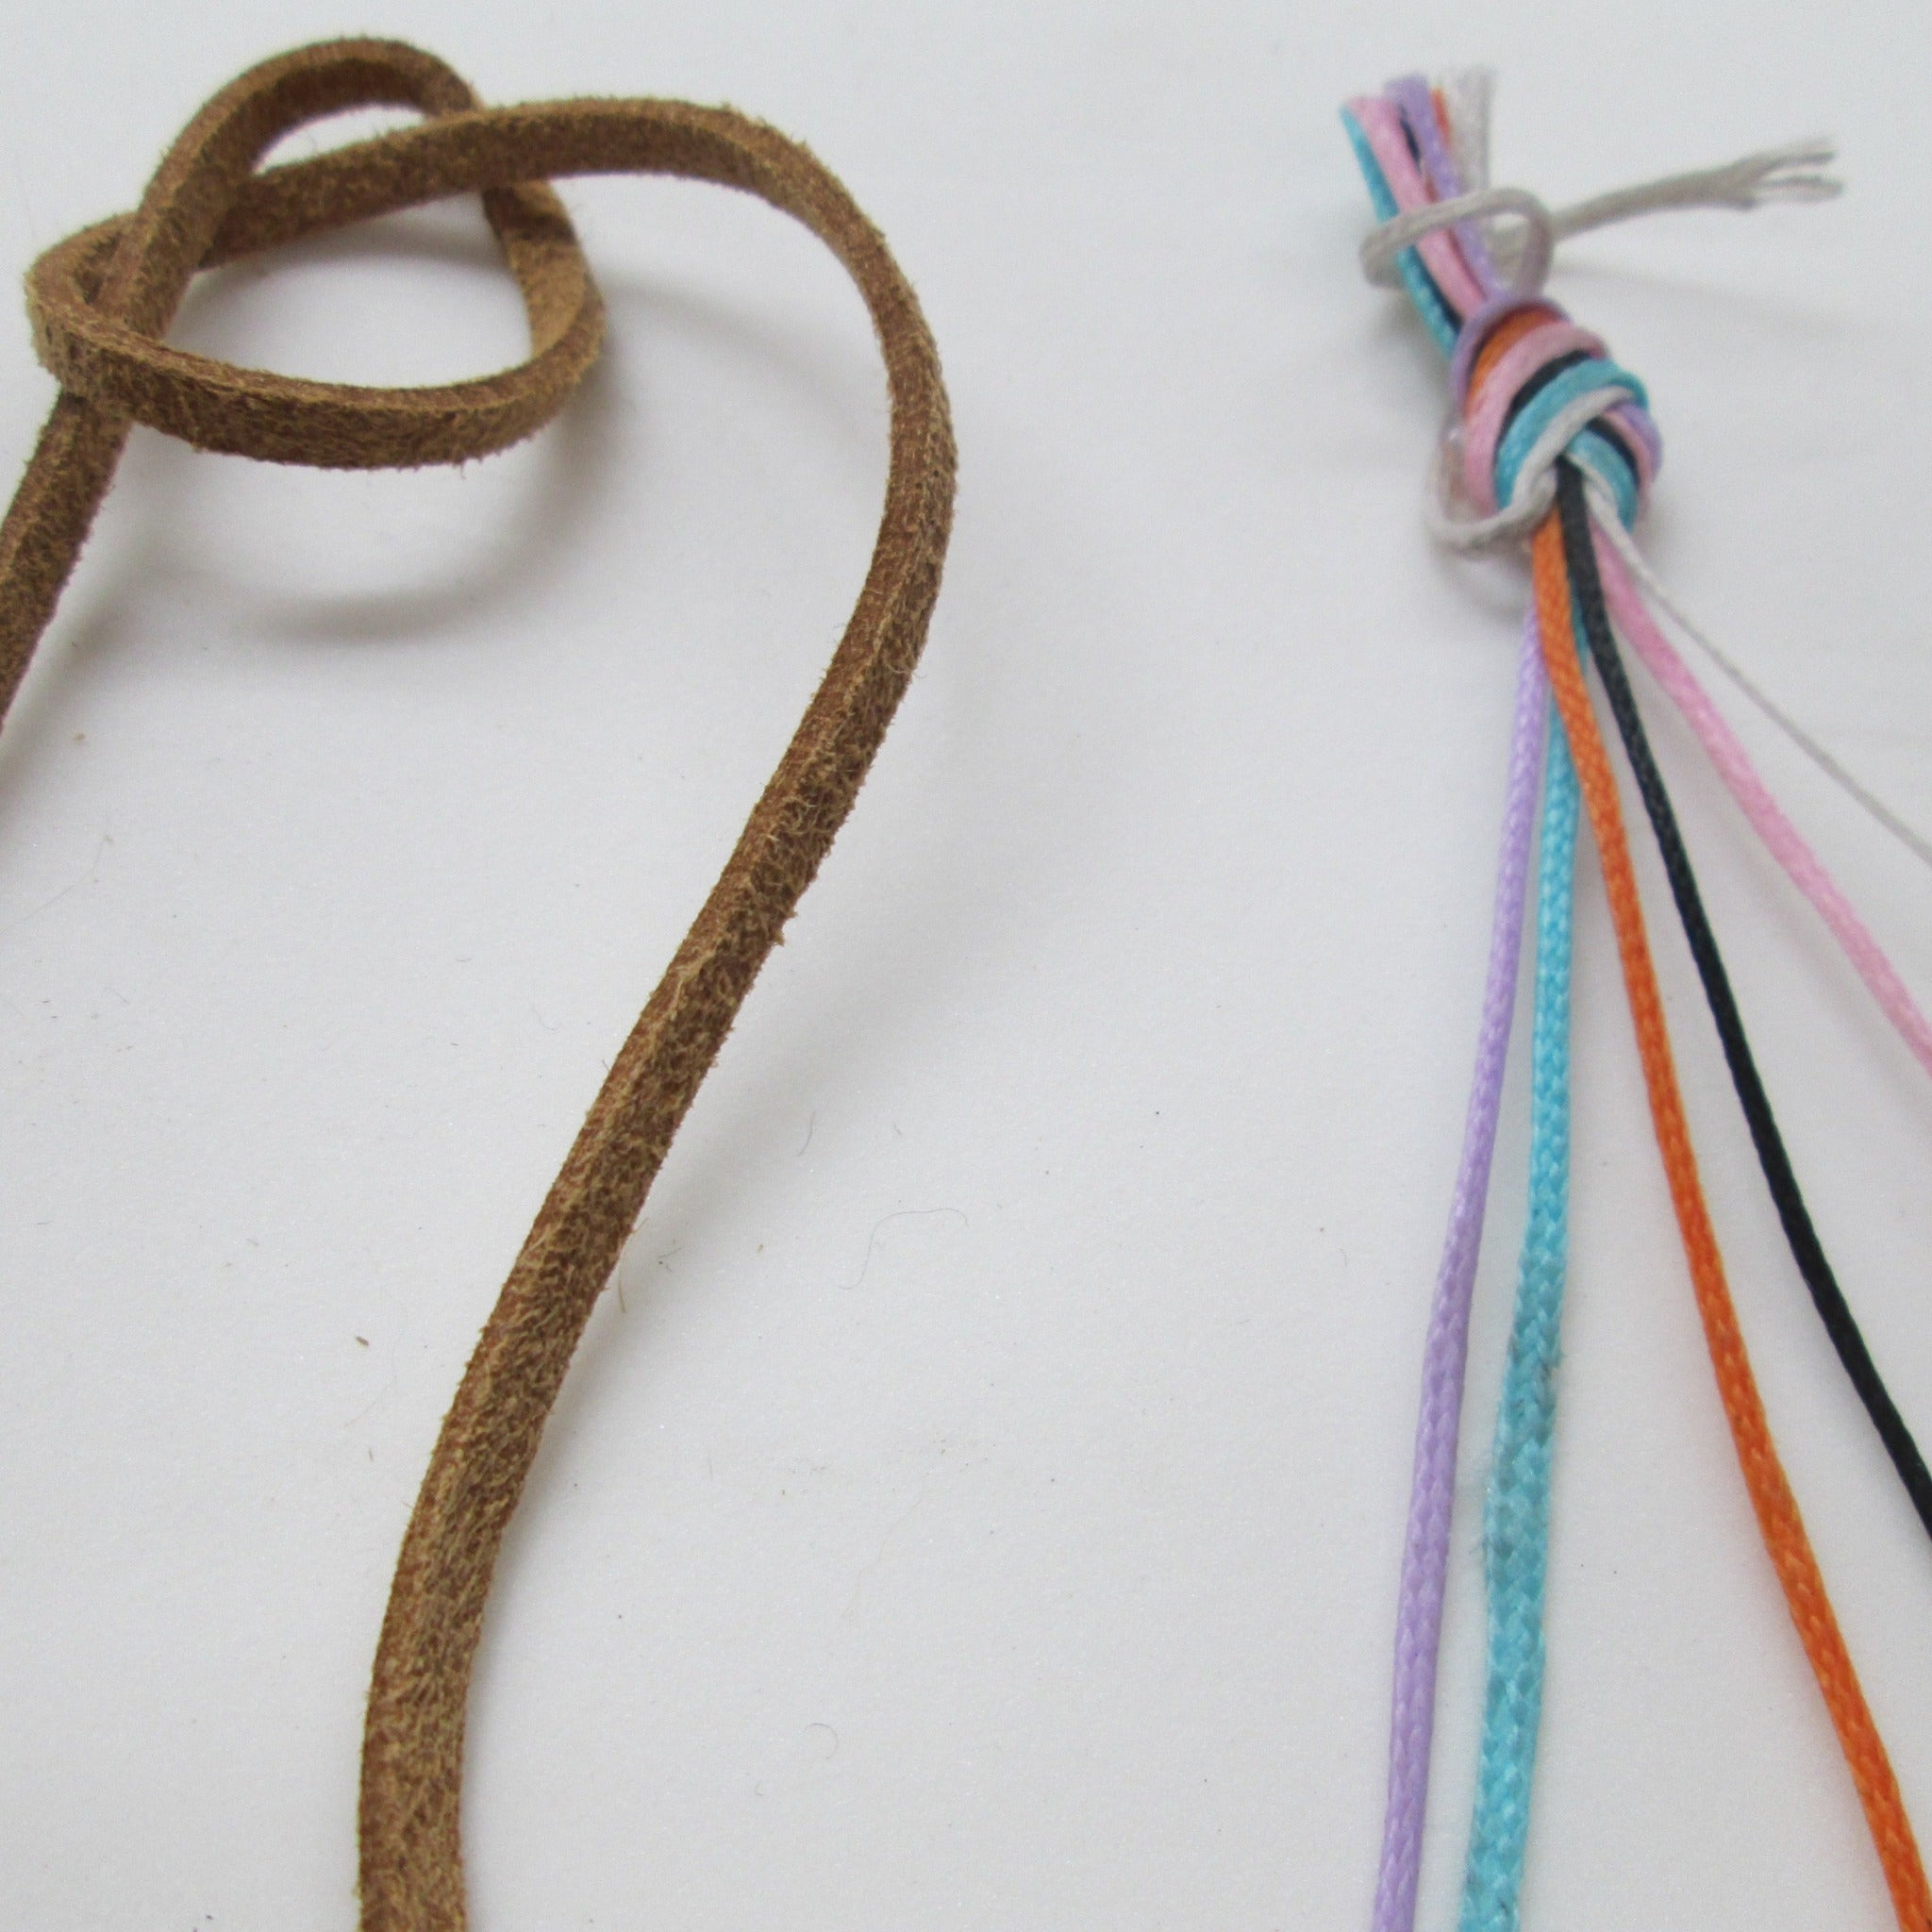 Bead threading materials and necklace making cords